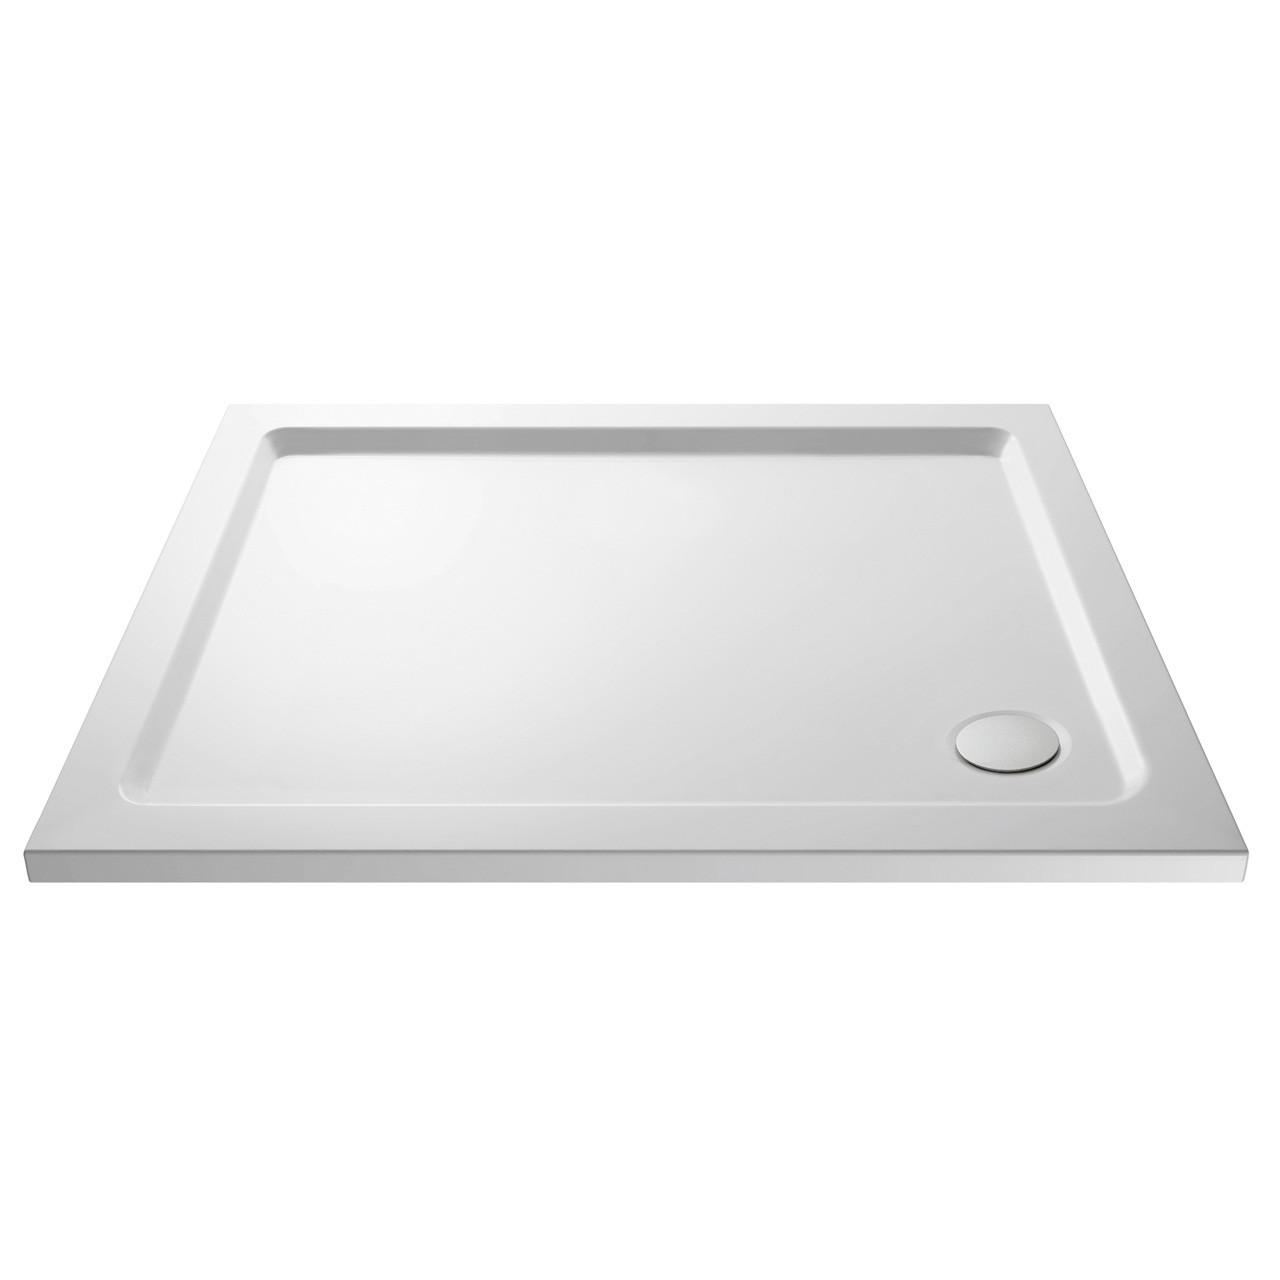 Premiere Pearlstone 1100mm x 800mm x 40mm Rectangular Shower Tray with Corner Waste - NTP018